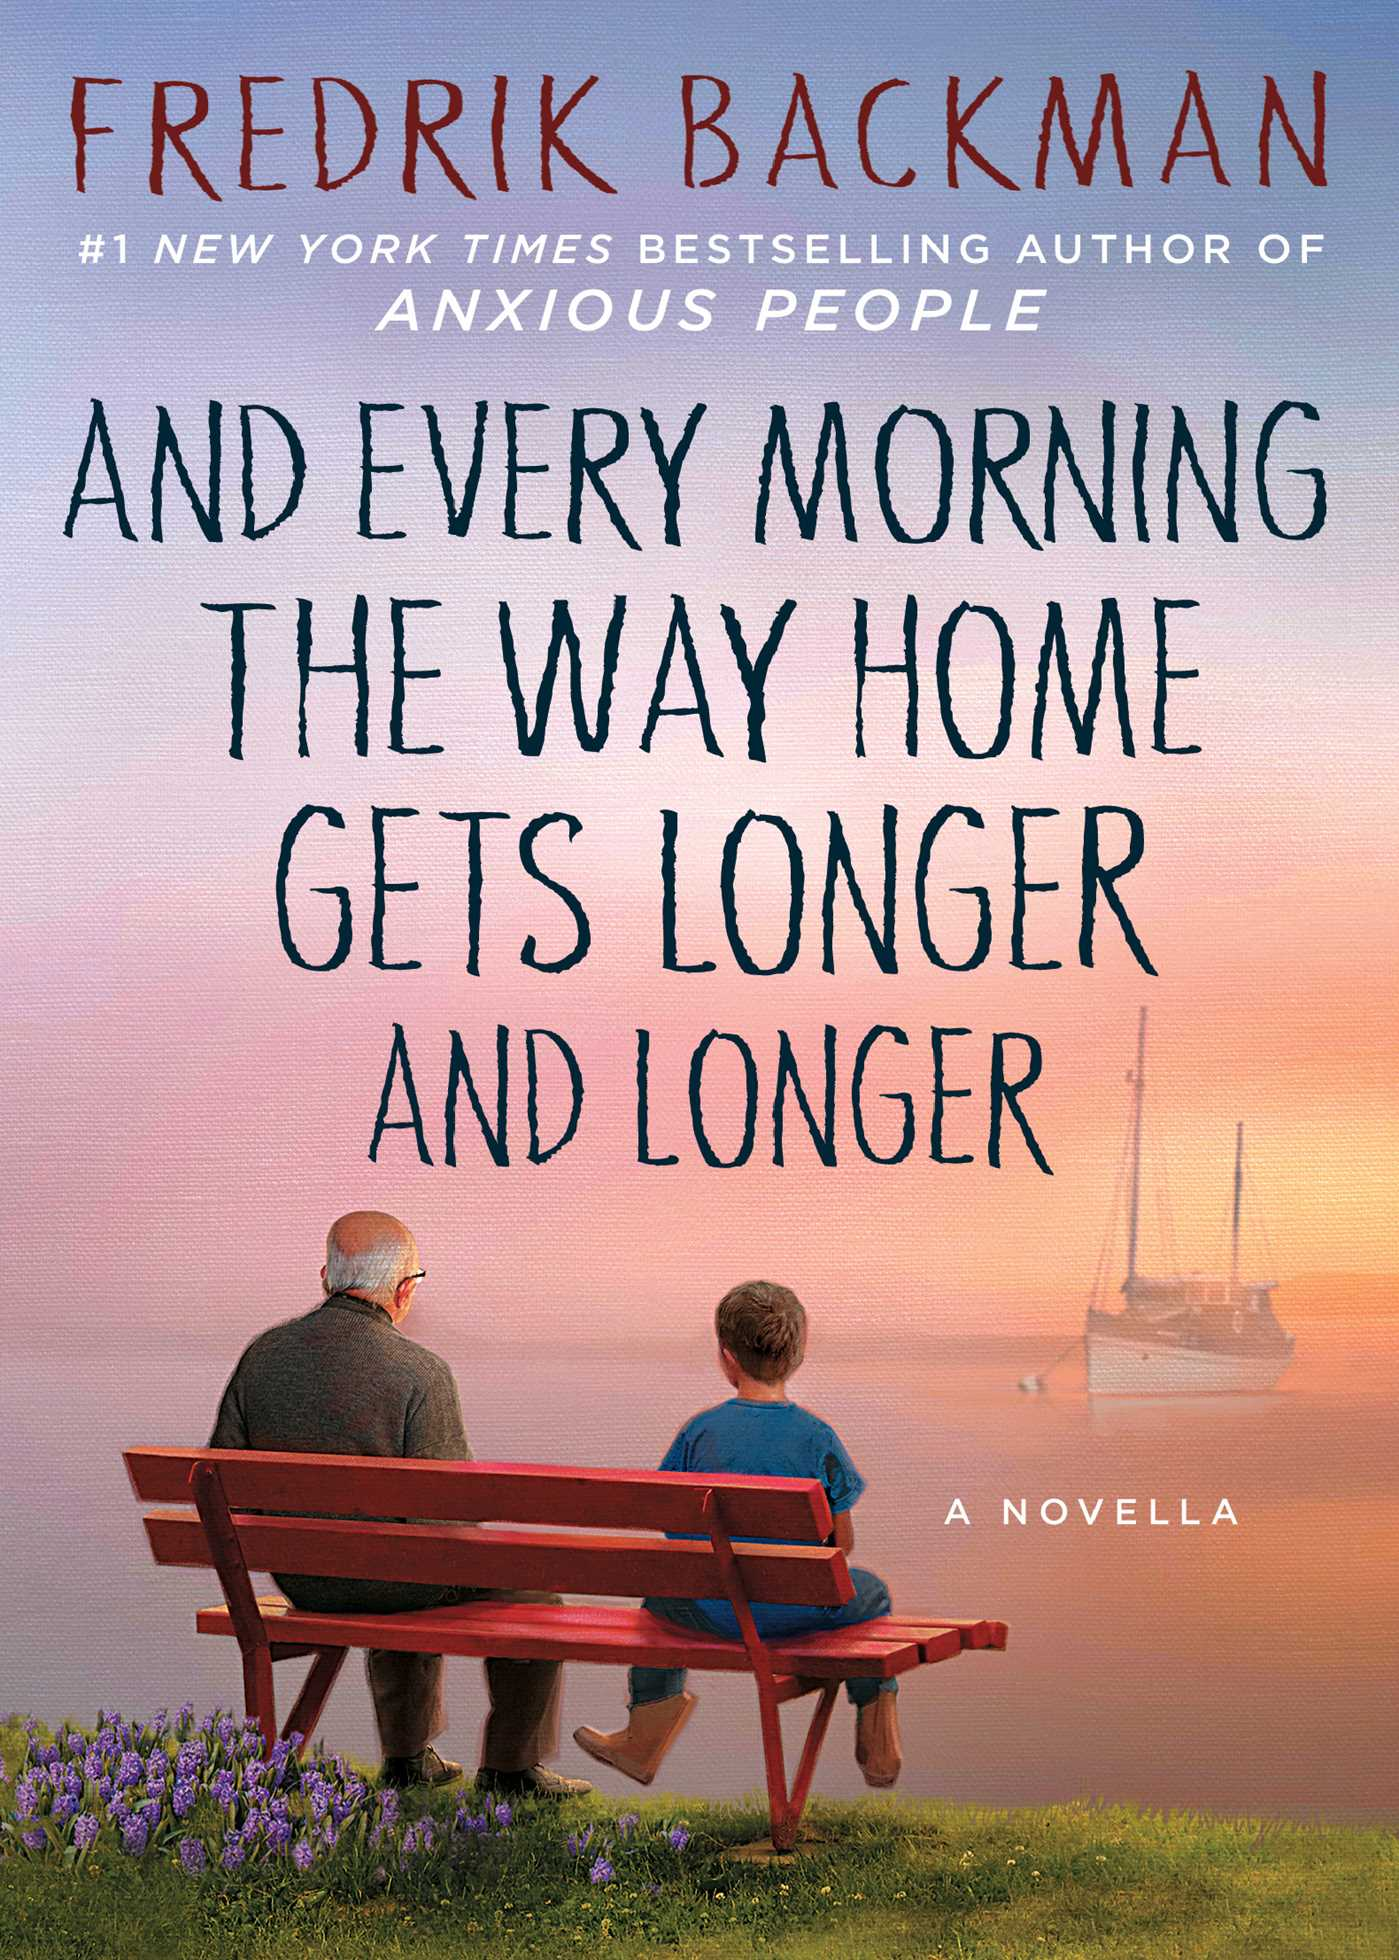 And every morning the way home gets longer and longer 9781501160486 hr